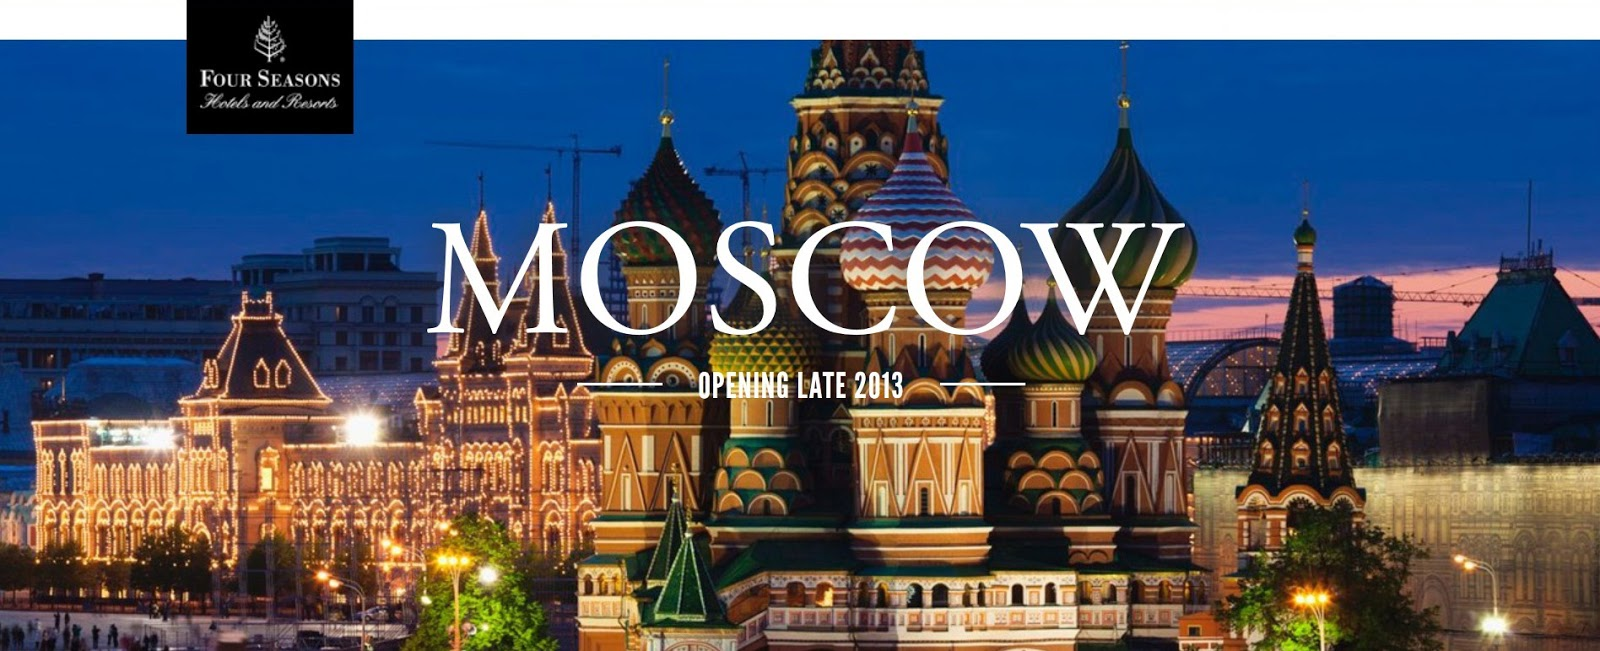 Four Seasons Hotel Moscow opening. Открытие 2013